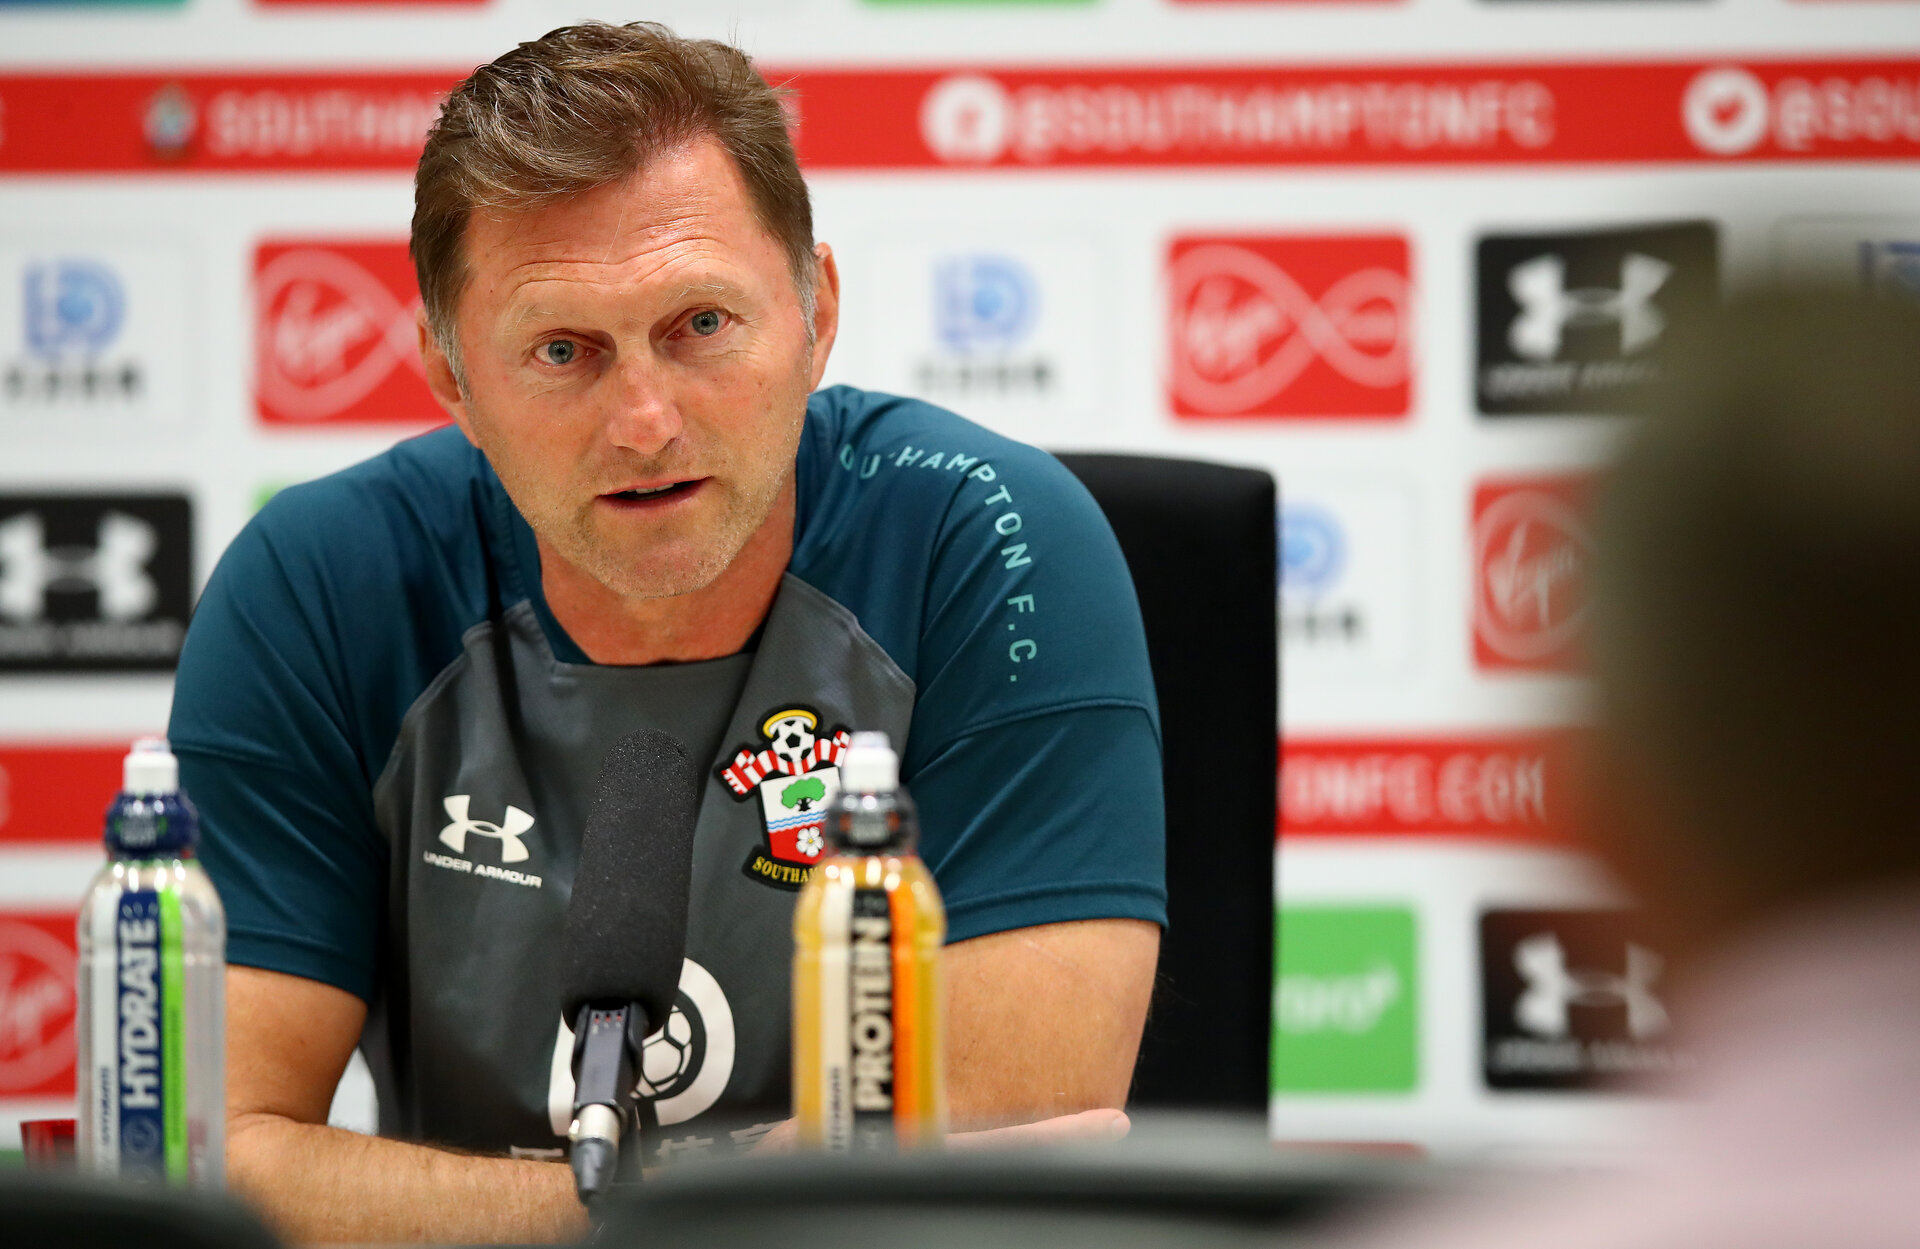 SOUTHAMPTON, ENGLAND - AUGUST 29: Manager Ralph Hasenhuttl during a Southampton FC press conference at the Staplewood Campus on August 29, 2019 in Southampton, England. (Photo by Matt Watson/Southampton FC via Getty Images)